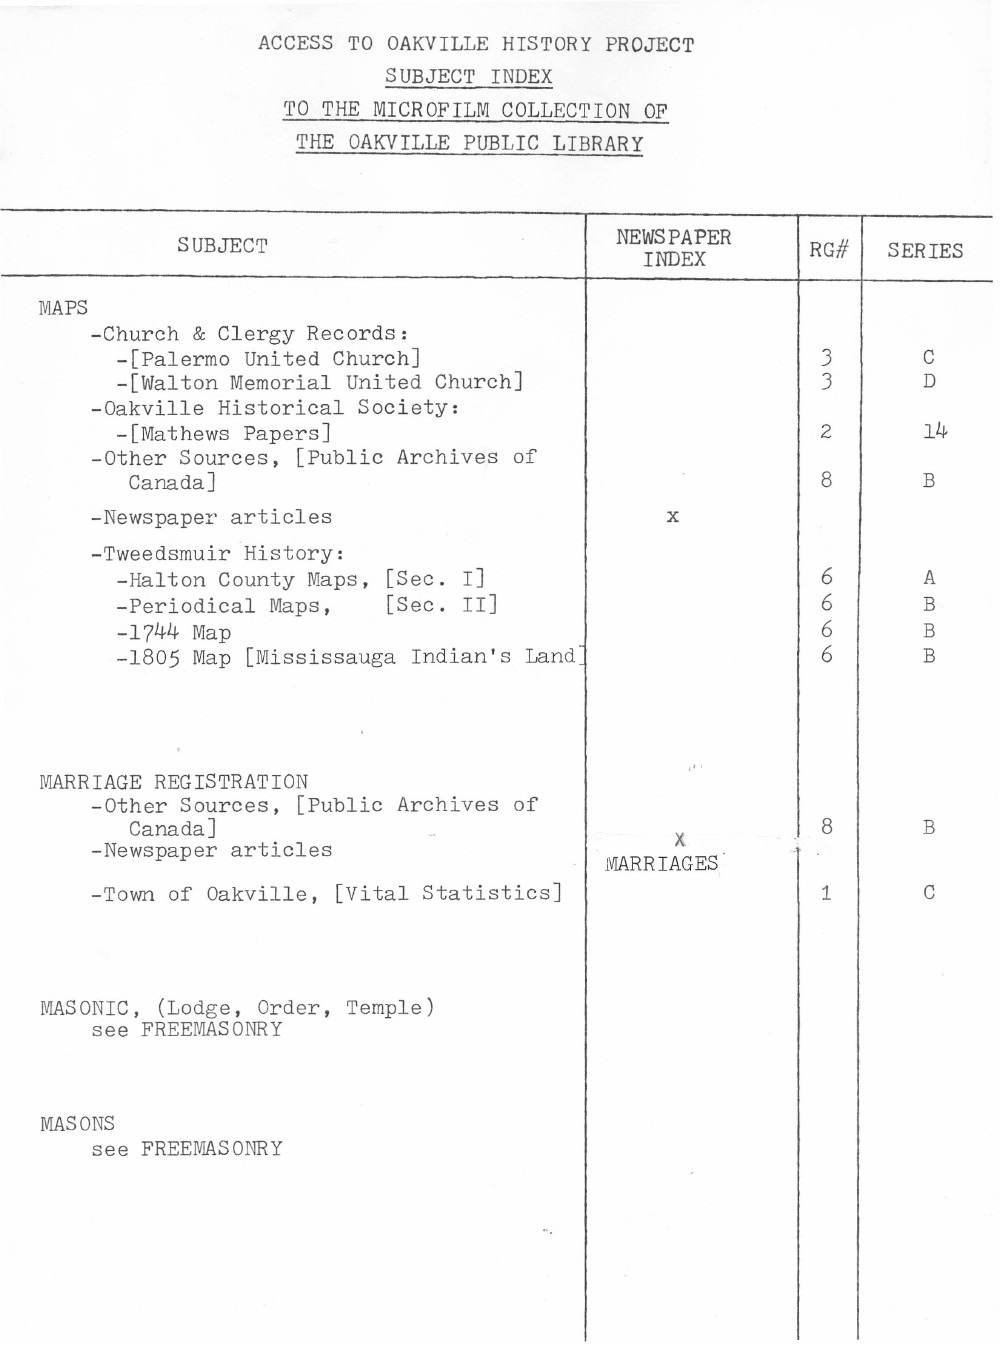 Subject Index for Microfilm Collections